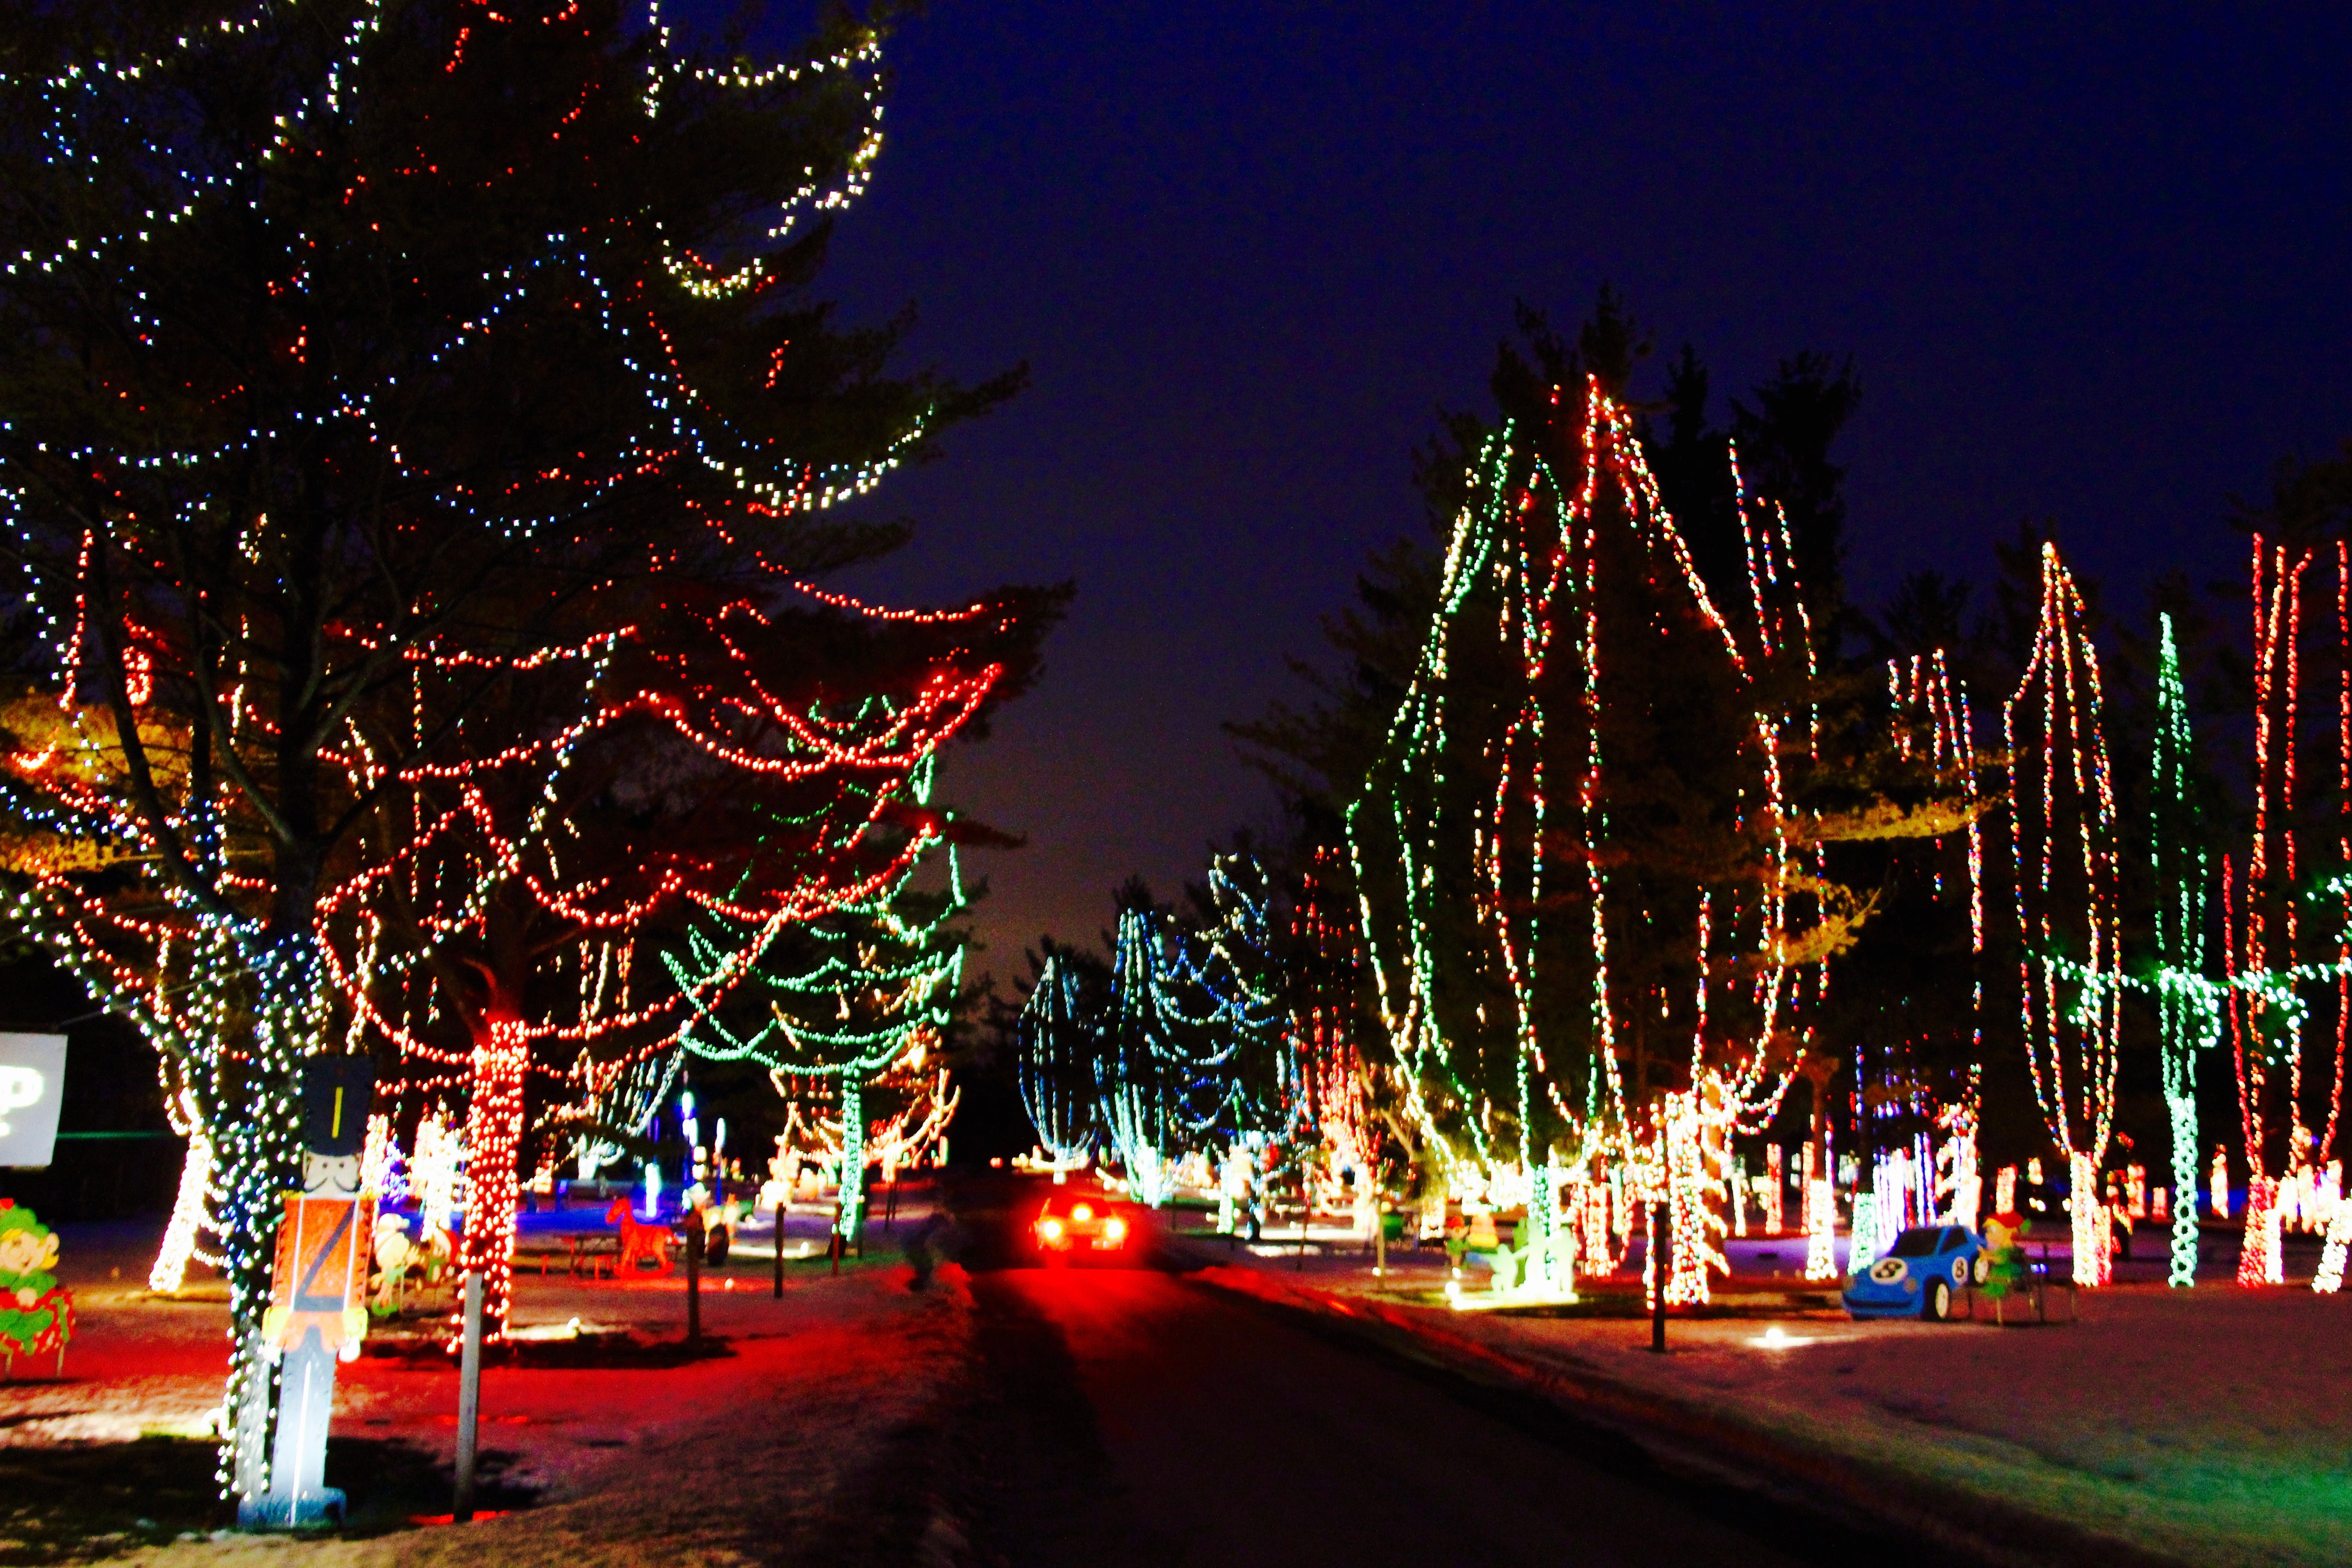 636468692746971617-Light-show-1-.jpg & Wisconsin Carnival of Lights in Jellystone Park opens for the holidays azcodes.com